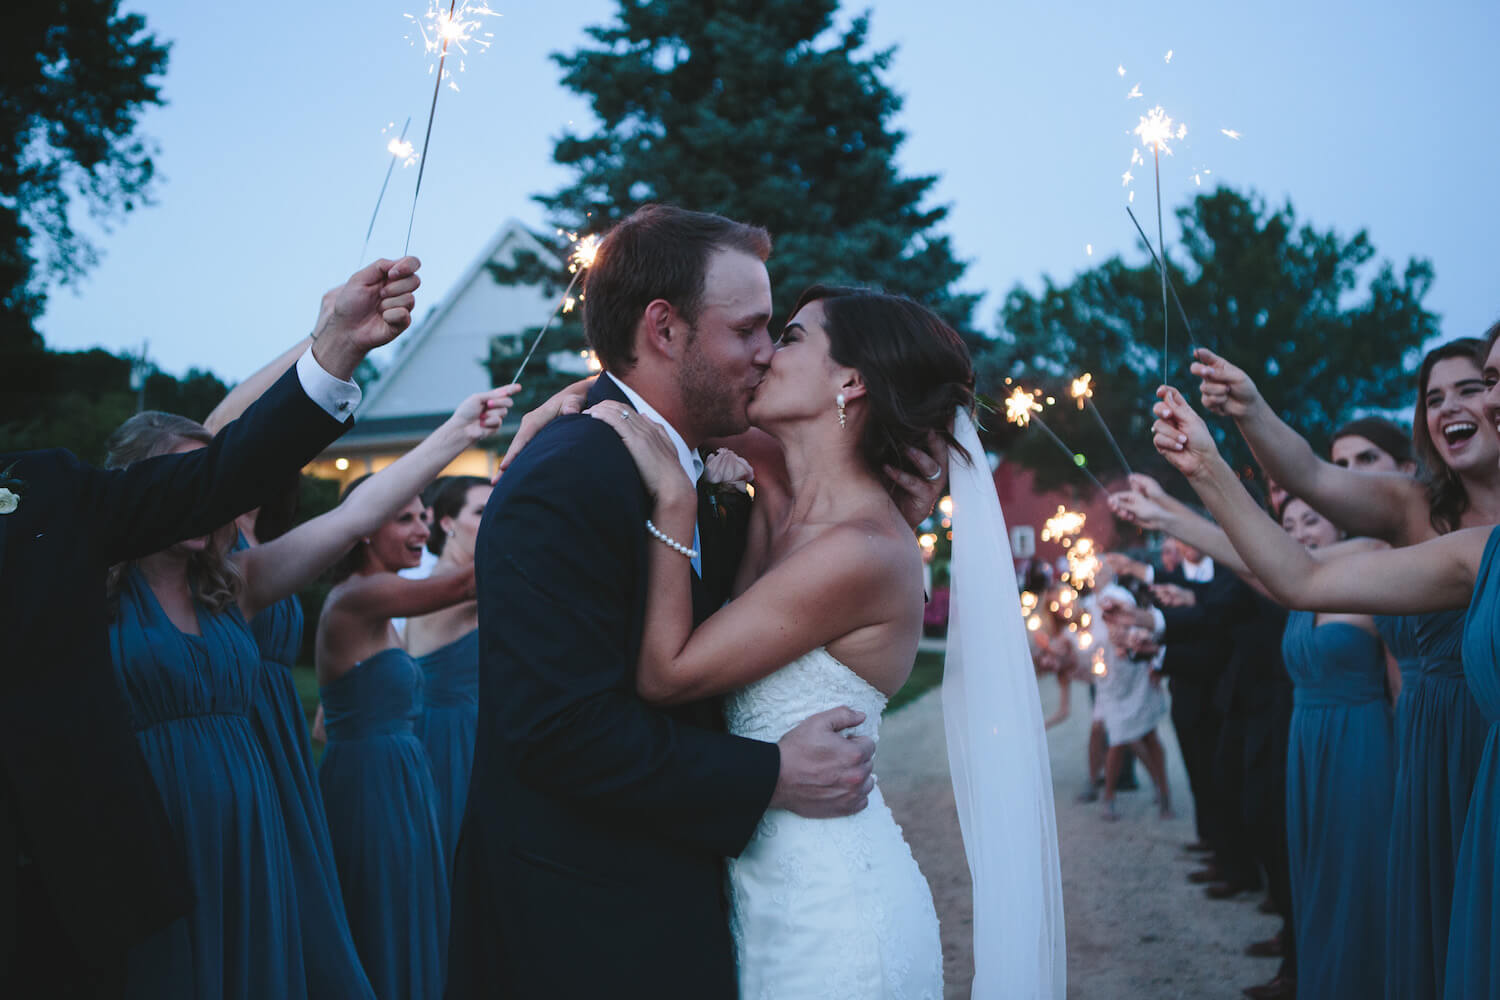 sparkler send off | Lauren Baker Photography and Sixpence Events & Planning Blog post: Must have wedding photography Tips